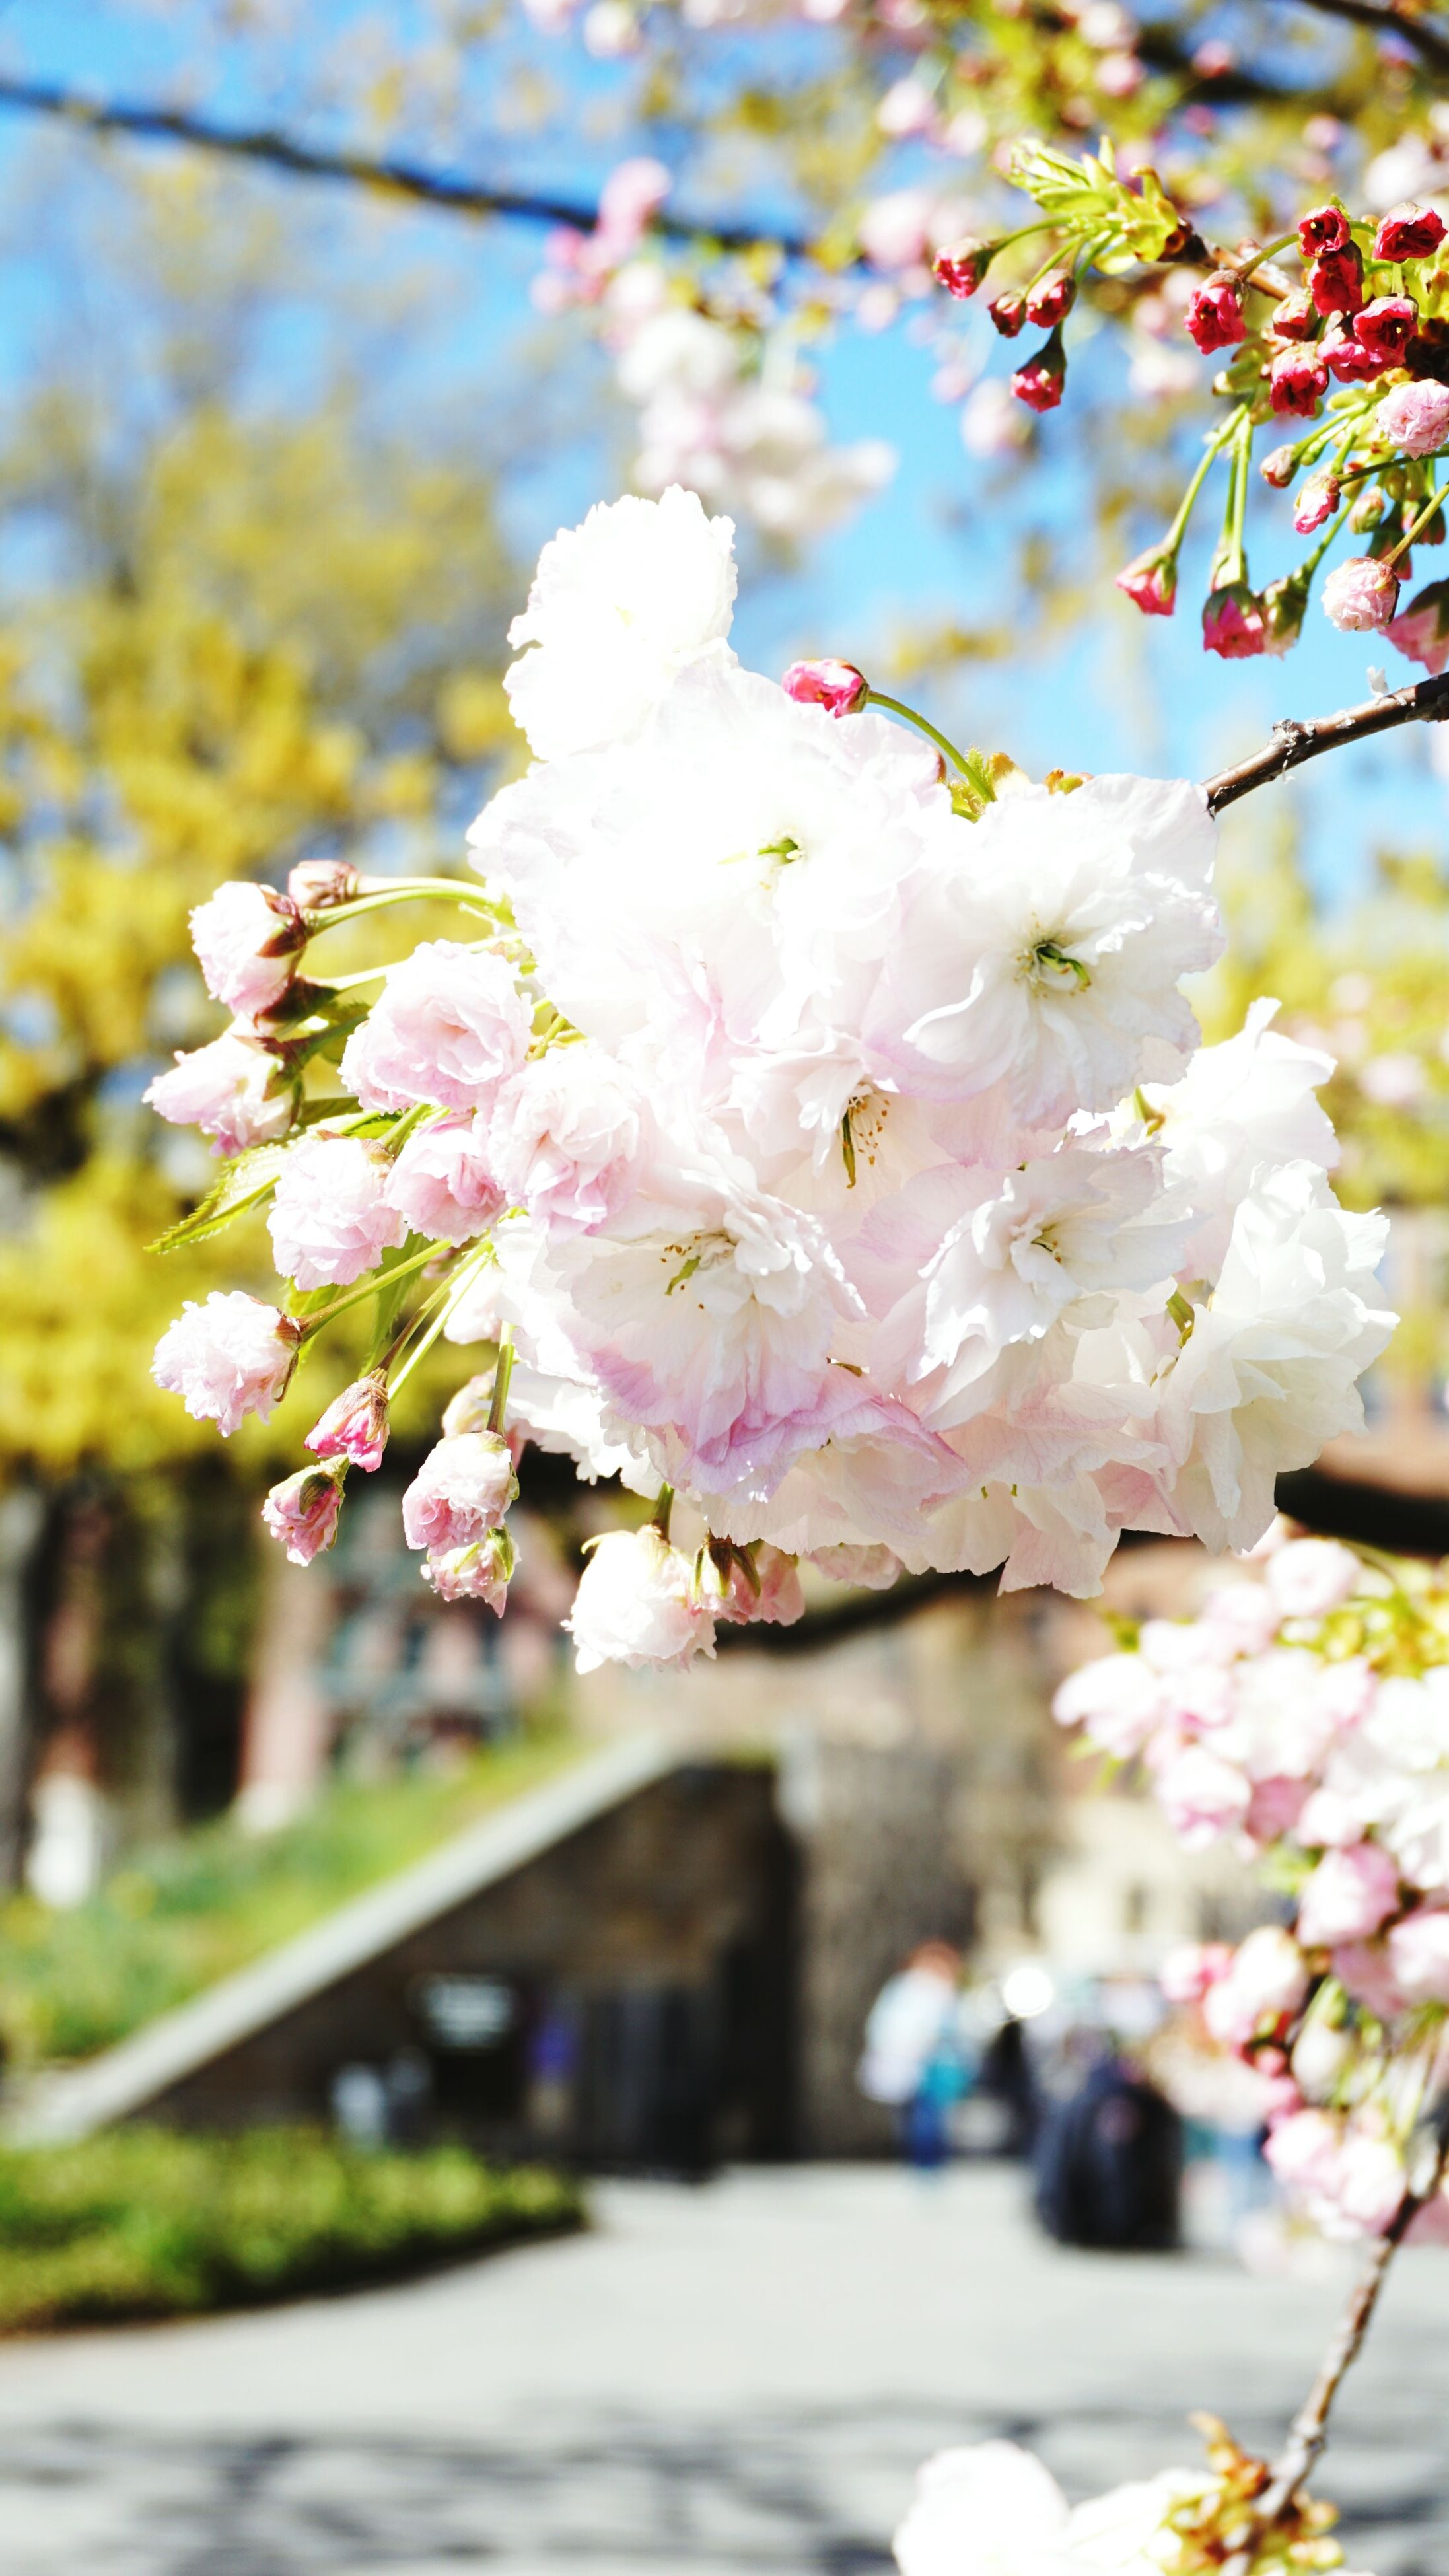 flower, freshness, fragility, cherry blossom, tree, growth, focus on foreground, petal, branch, beauty in nature, blossom, cherry tree, nature, close-up, blooming, in bloom, springtime, selective focus, white color, flower head